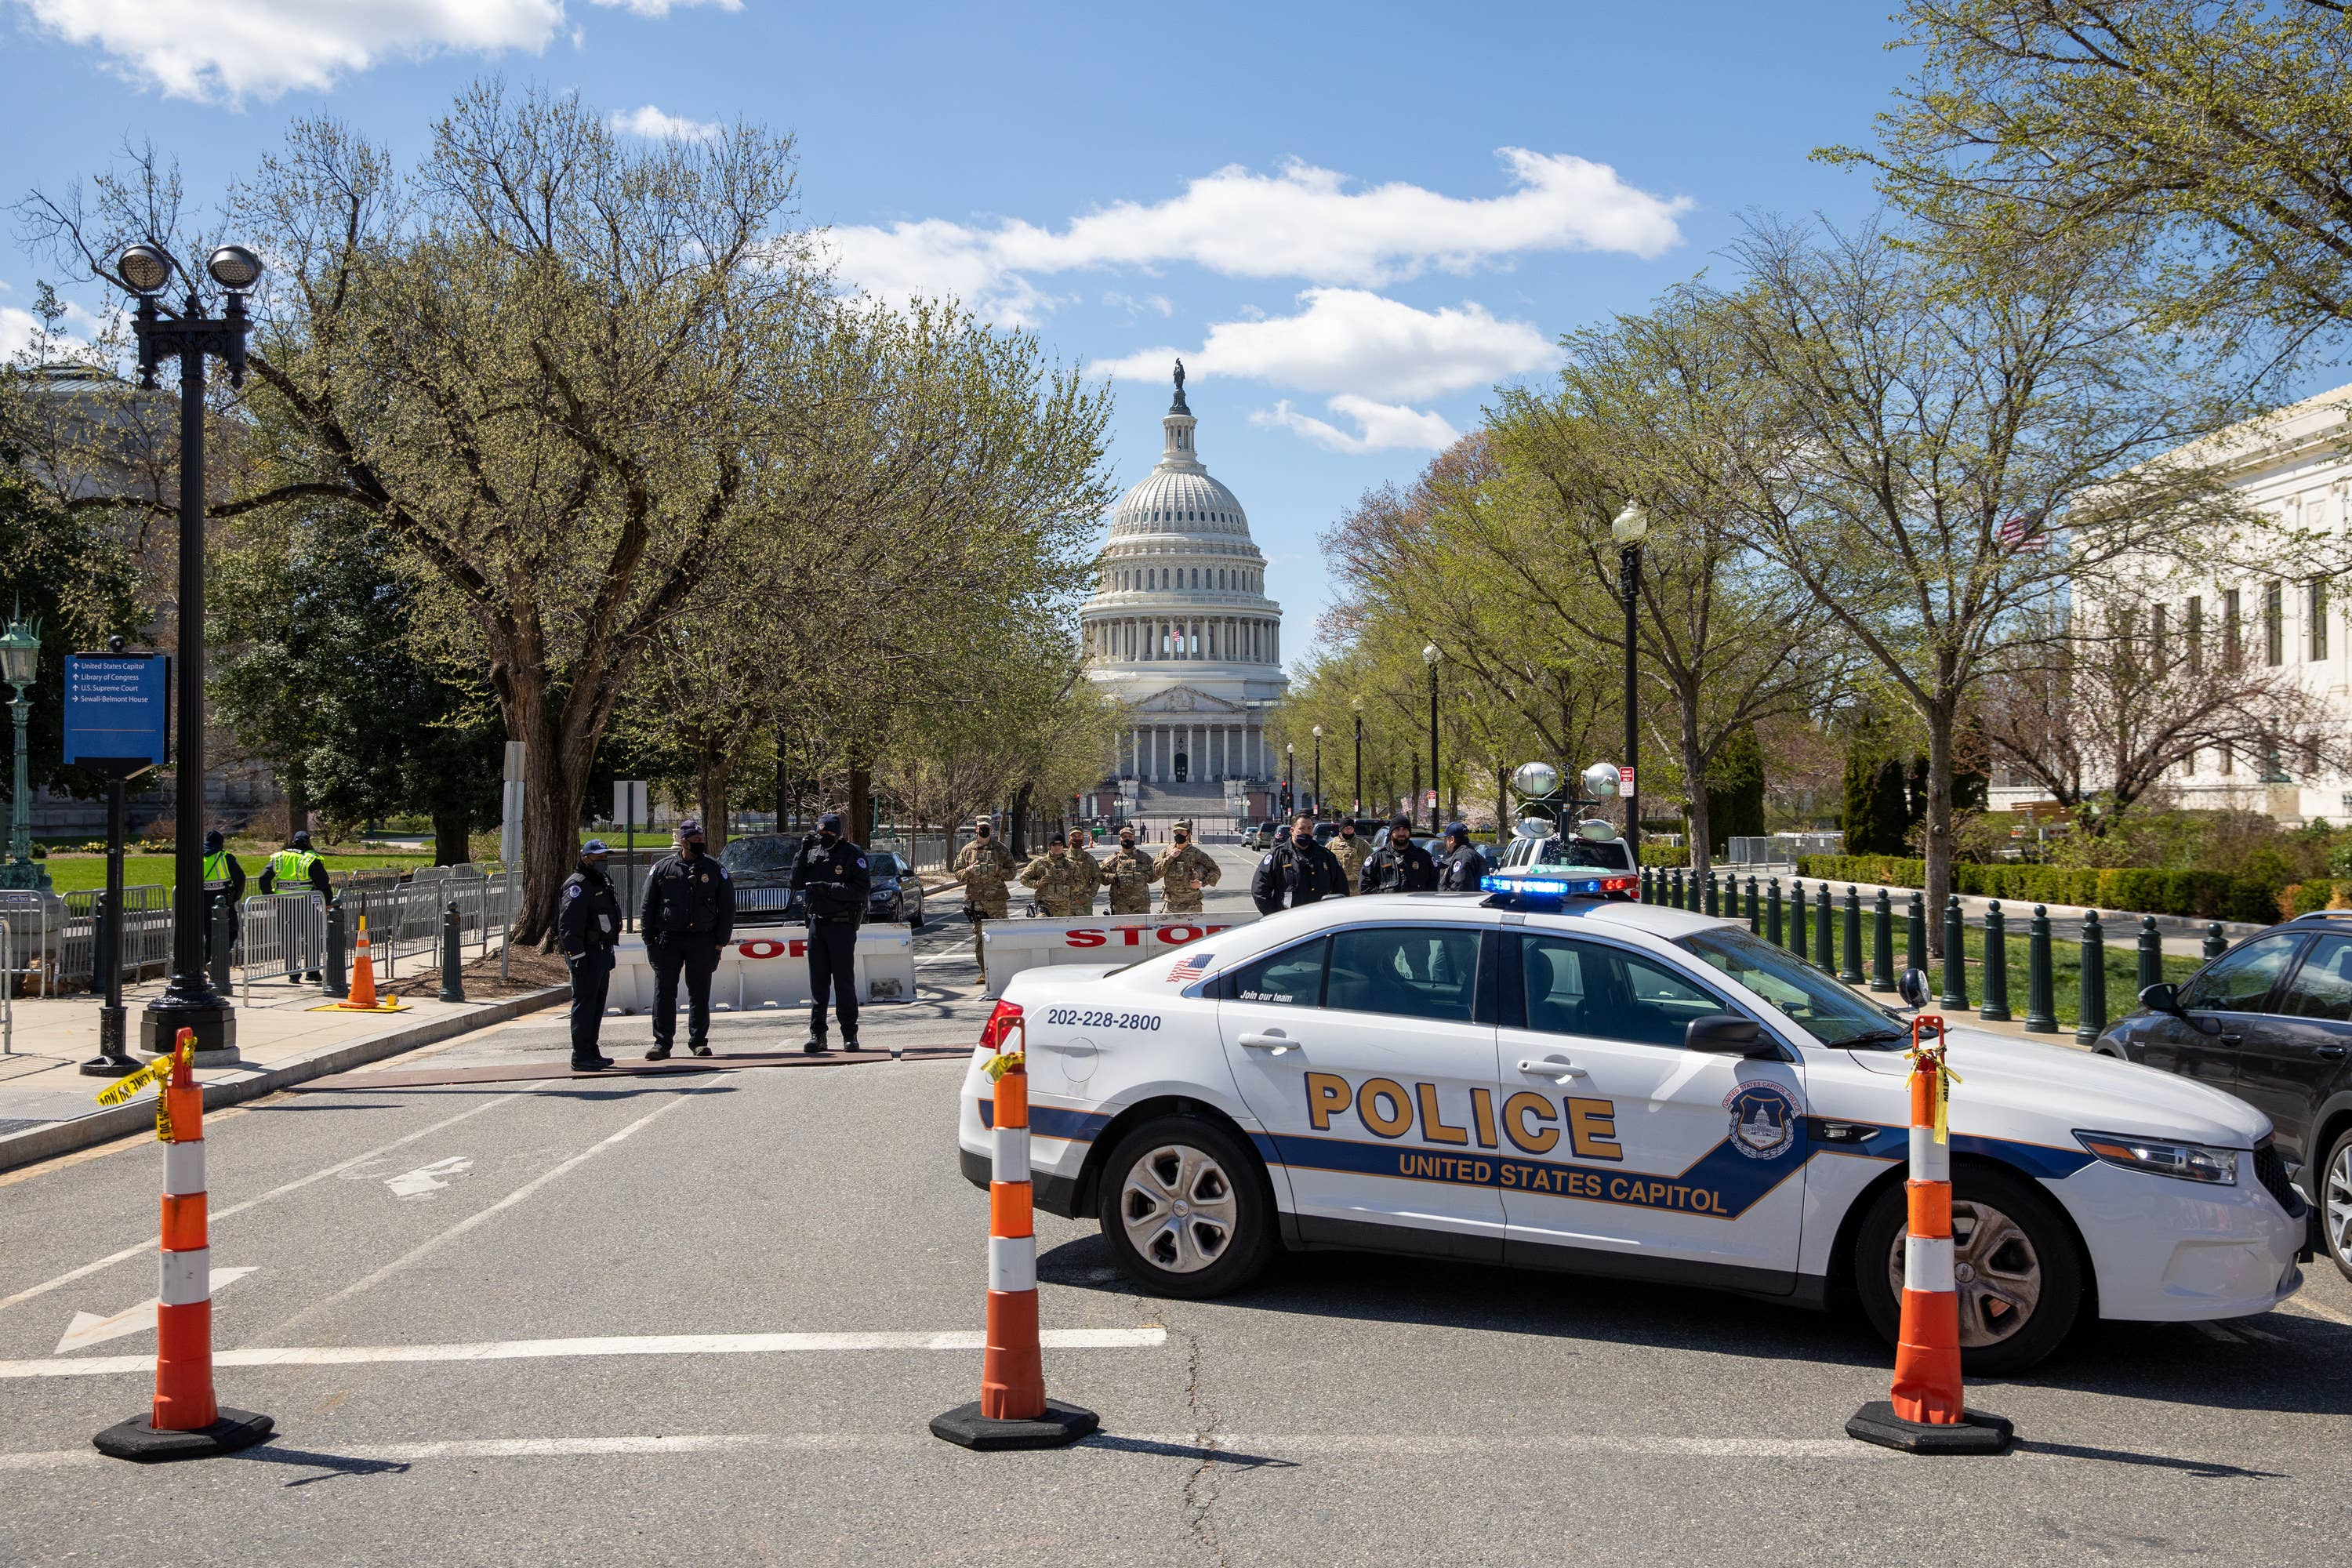 The Capitol Police Officer Killed In A Car Attack Will Lie In Honor In The Rotunda